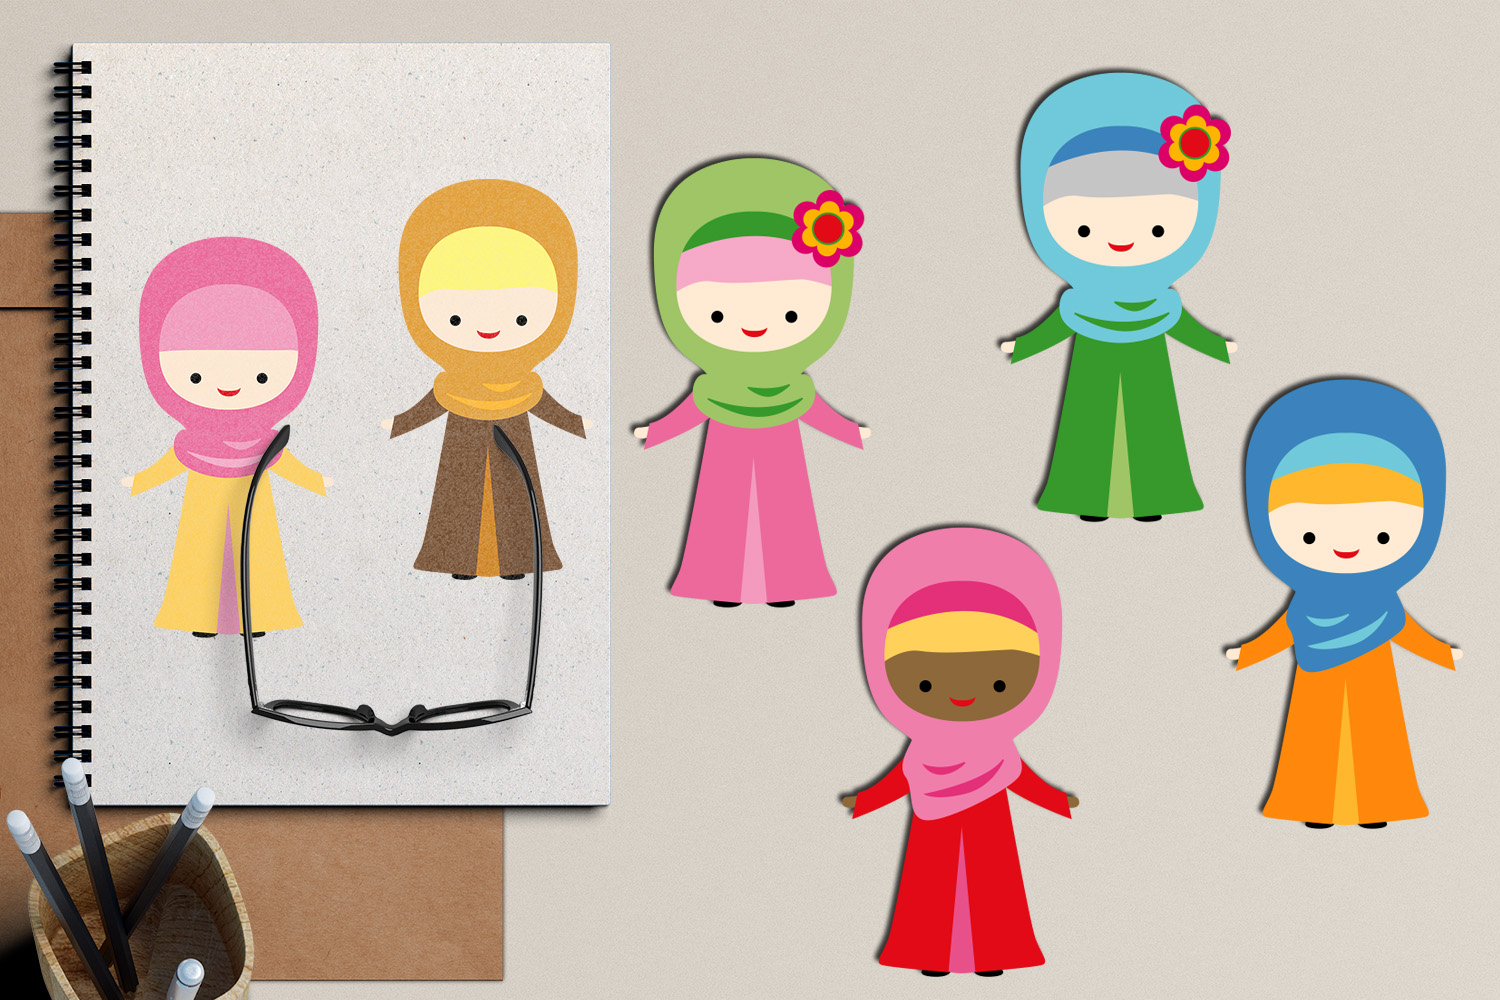 Free clipart images for commercial use. Muslim Hijab Girls - Islam women clipart - Ramadhan ...